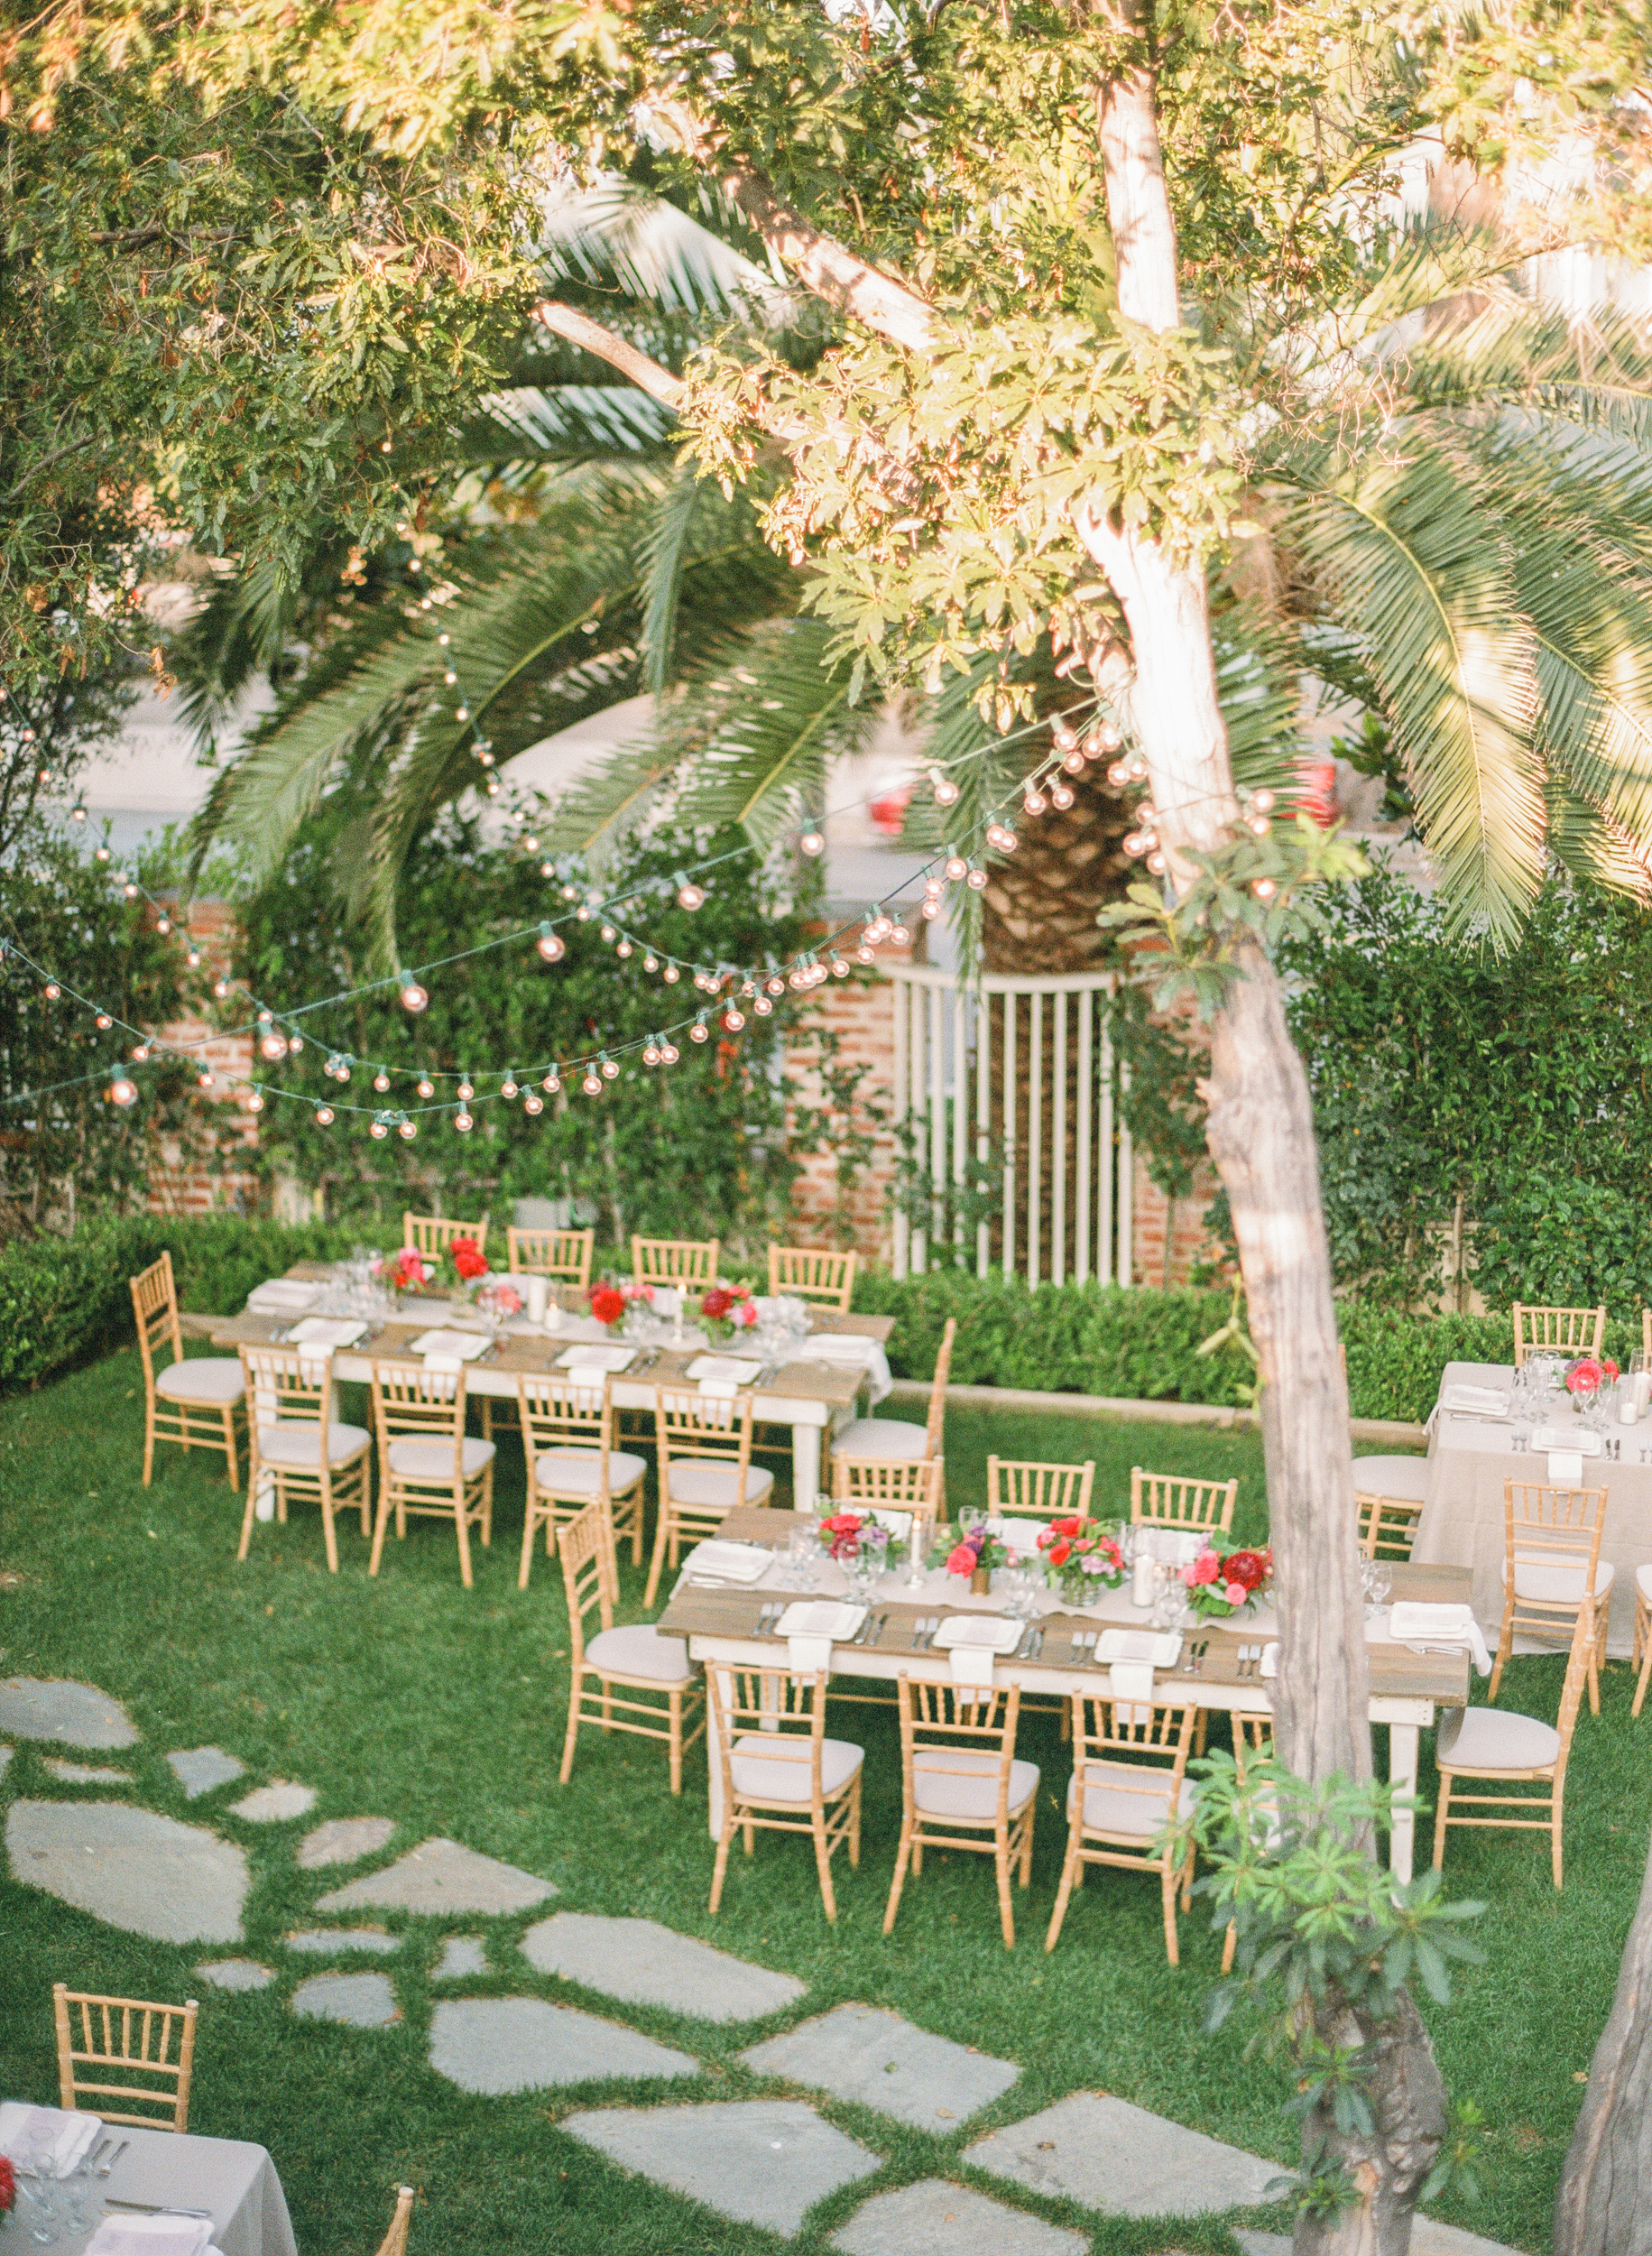 Sylvie-Gil-Lombardi-House-LosAngeles-colorful-wedding-outdoor-reception-white-barn-string-lights-palm-trees